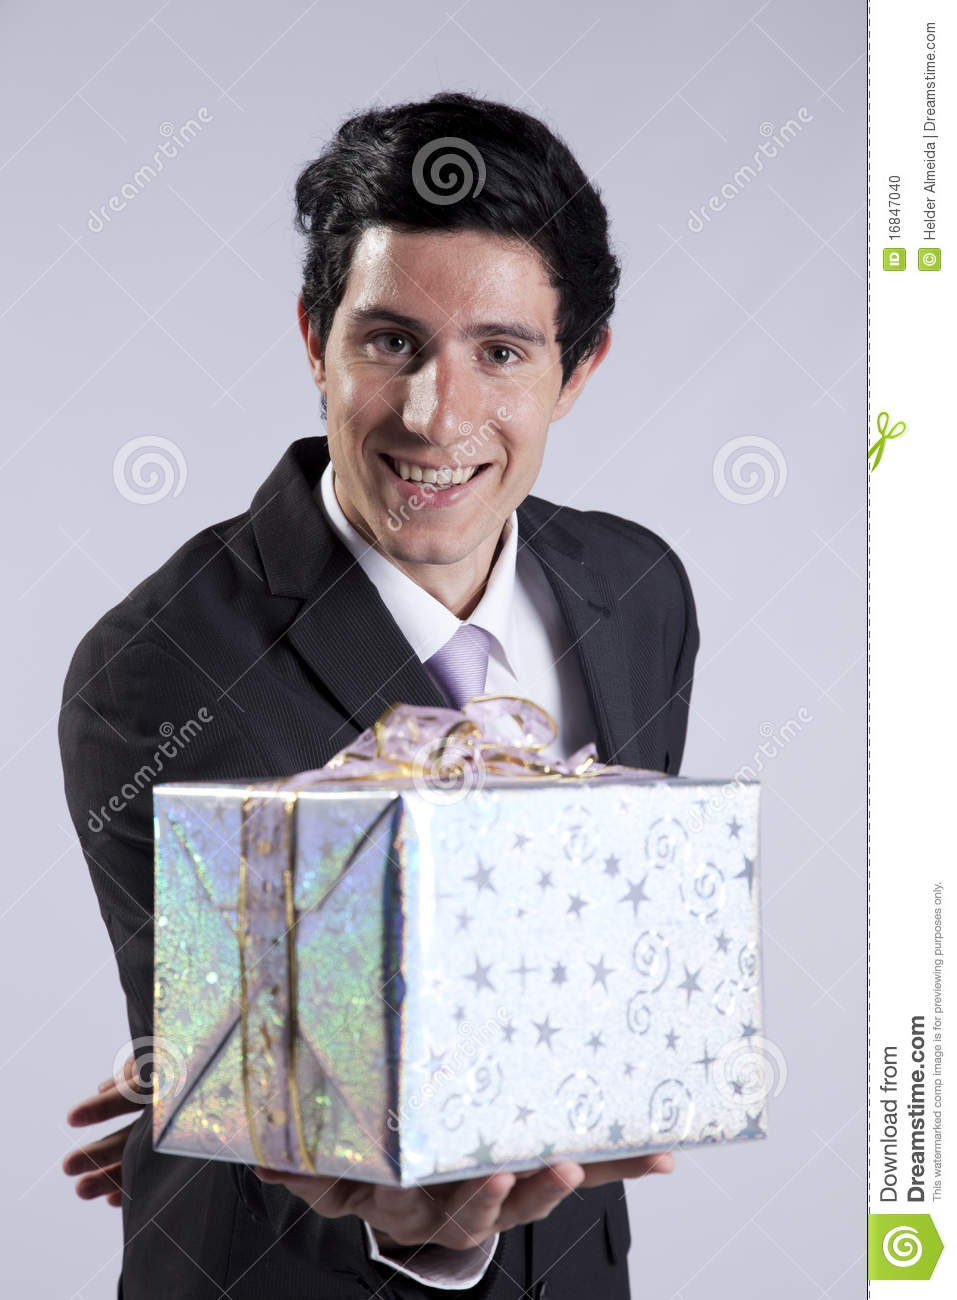 Businessman with a gift package